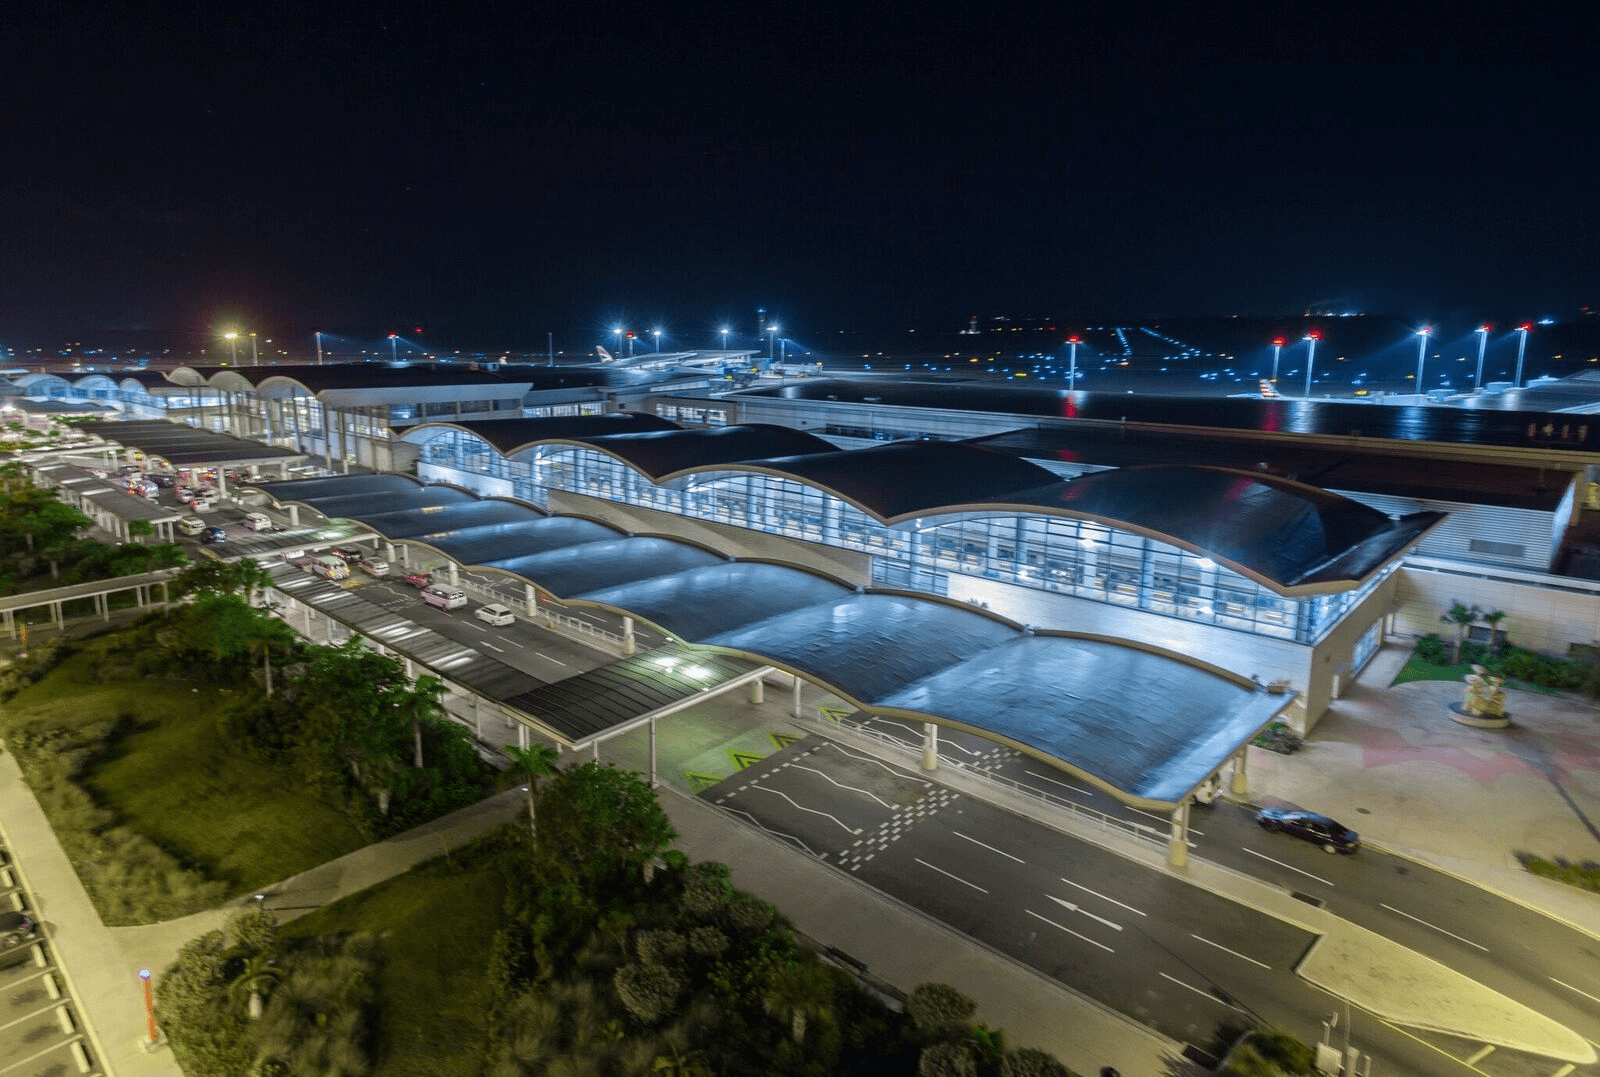 Press Release – NAD Issues Airport Hotel RFP, Outlines